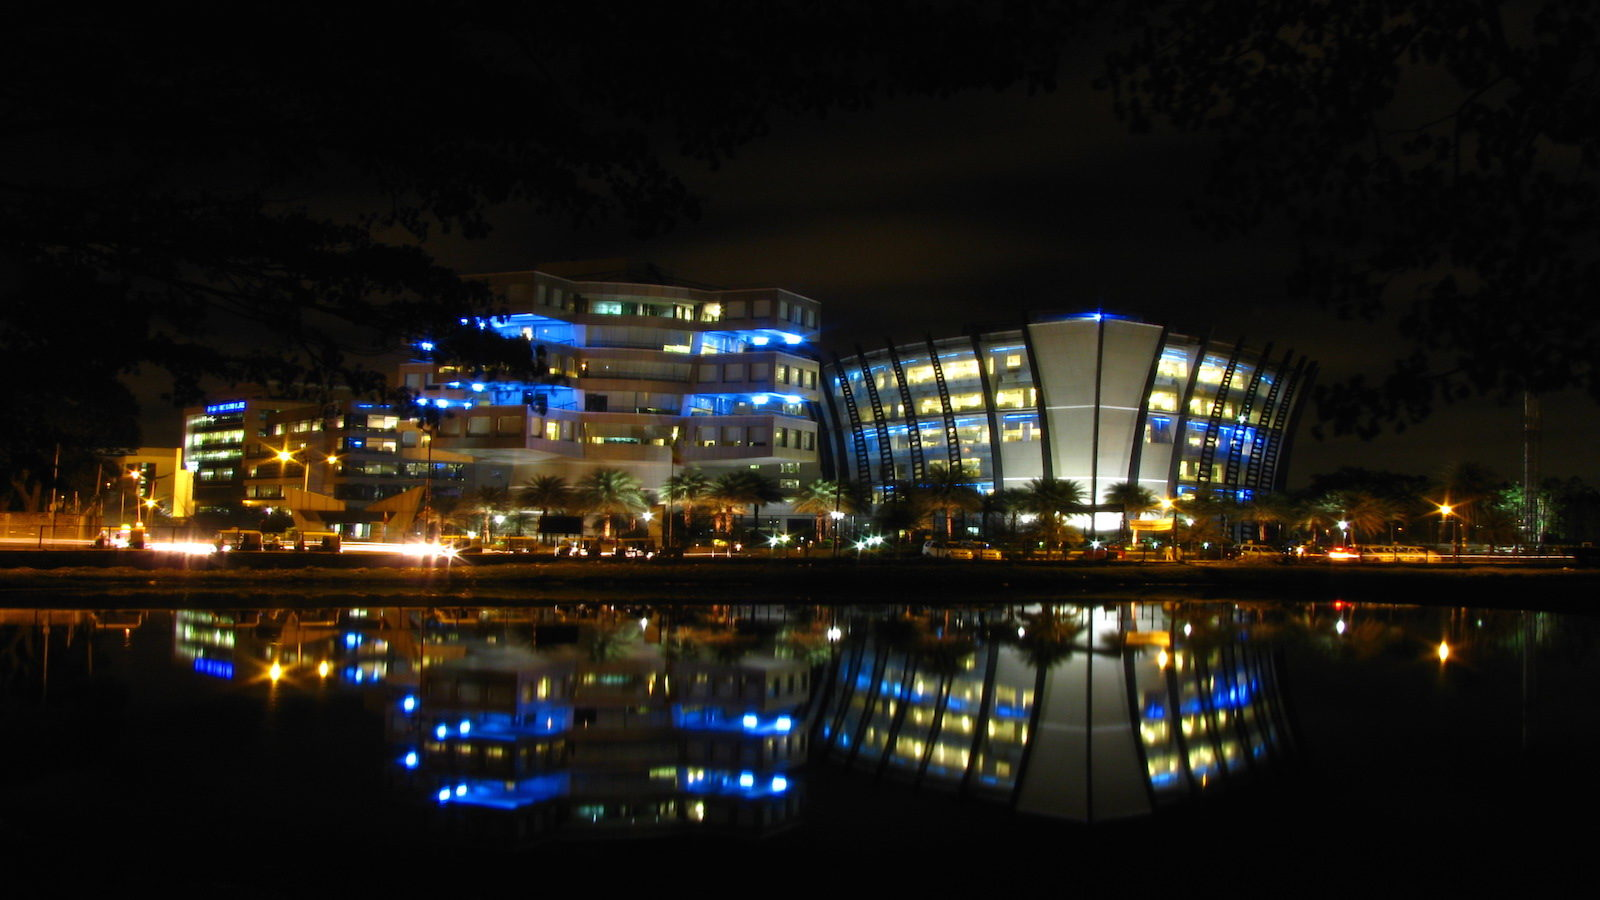 Bagmane tech park in Bangalore